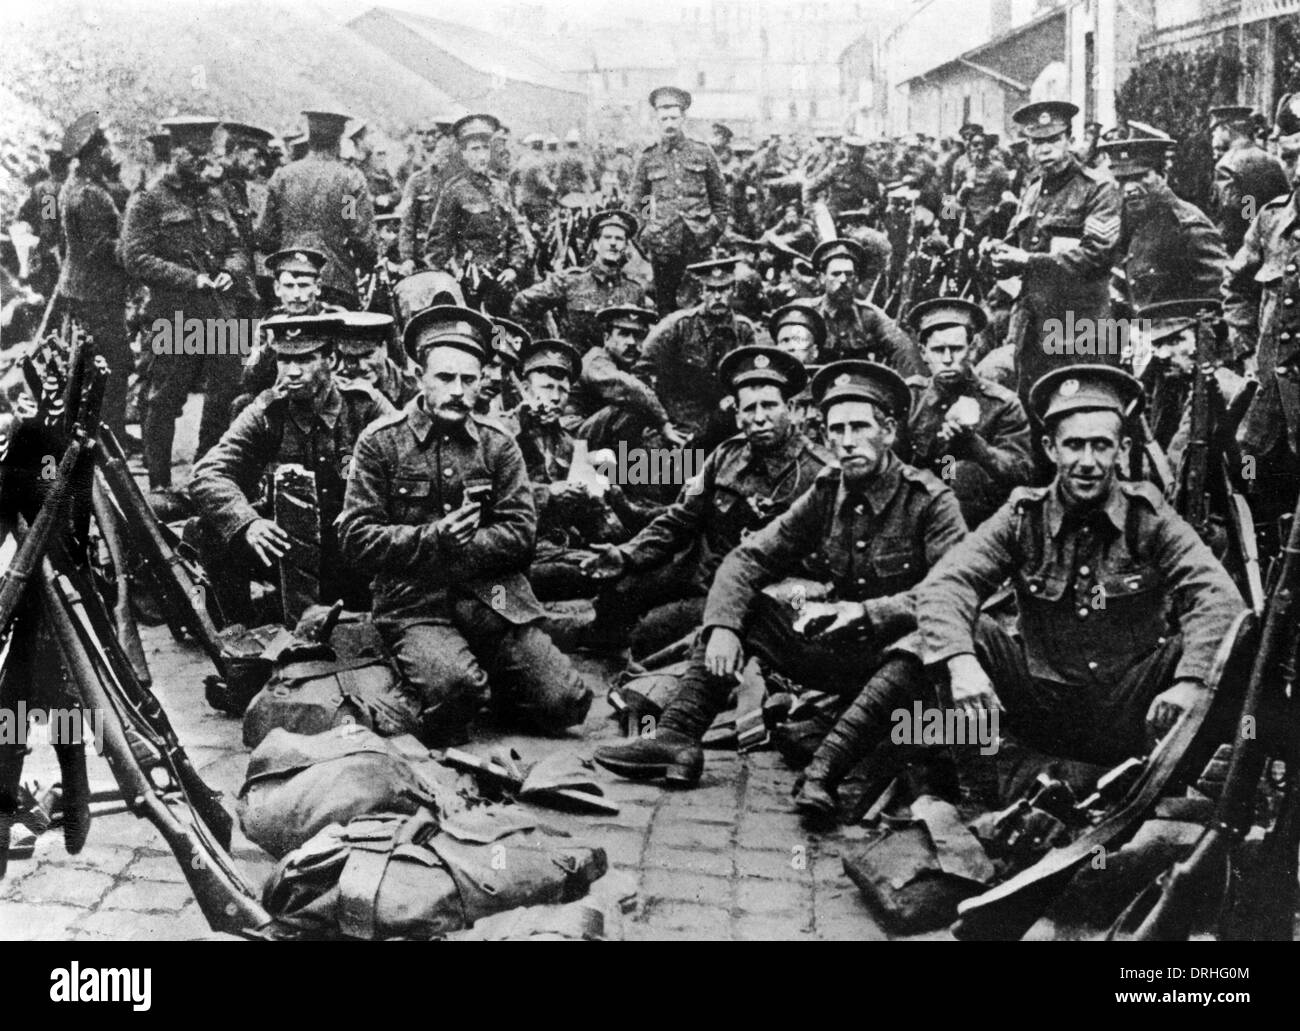 Group photo, British soldiers, WW1 - Stock Image